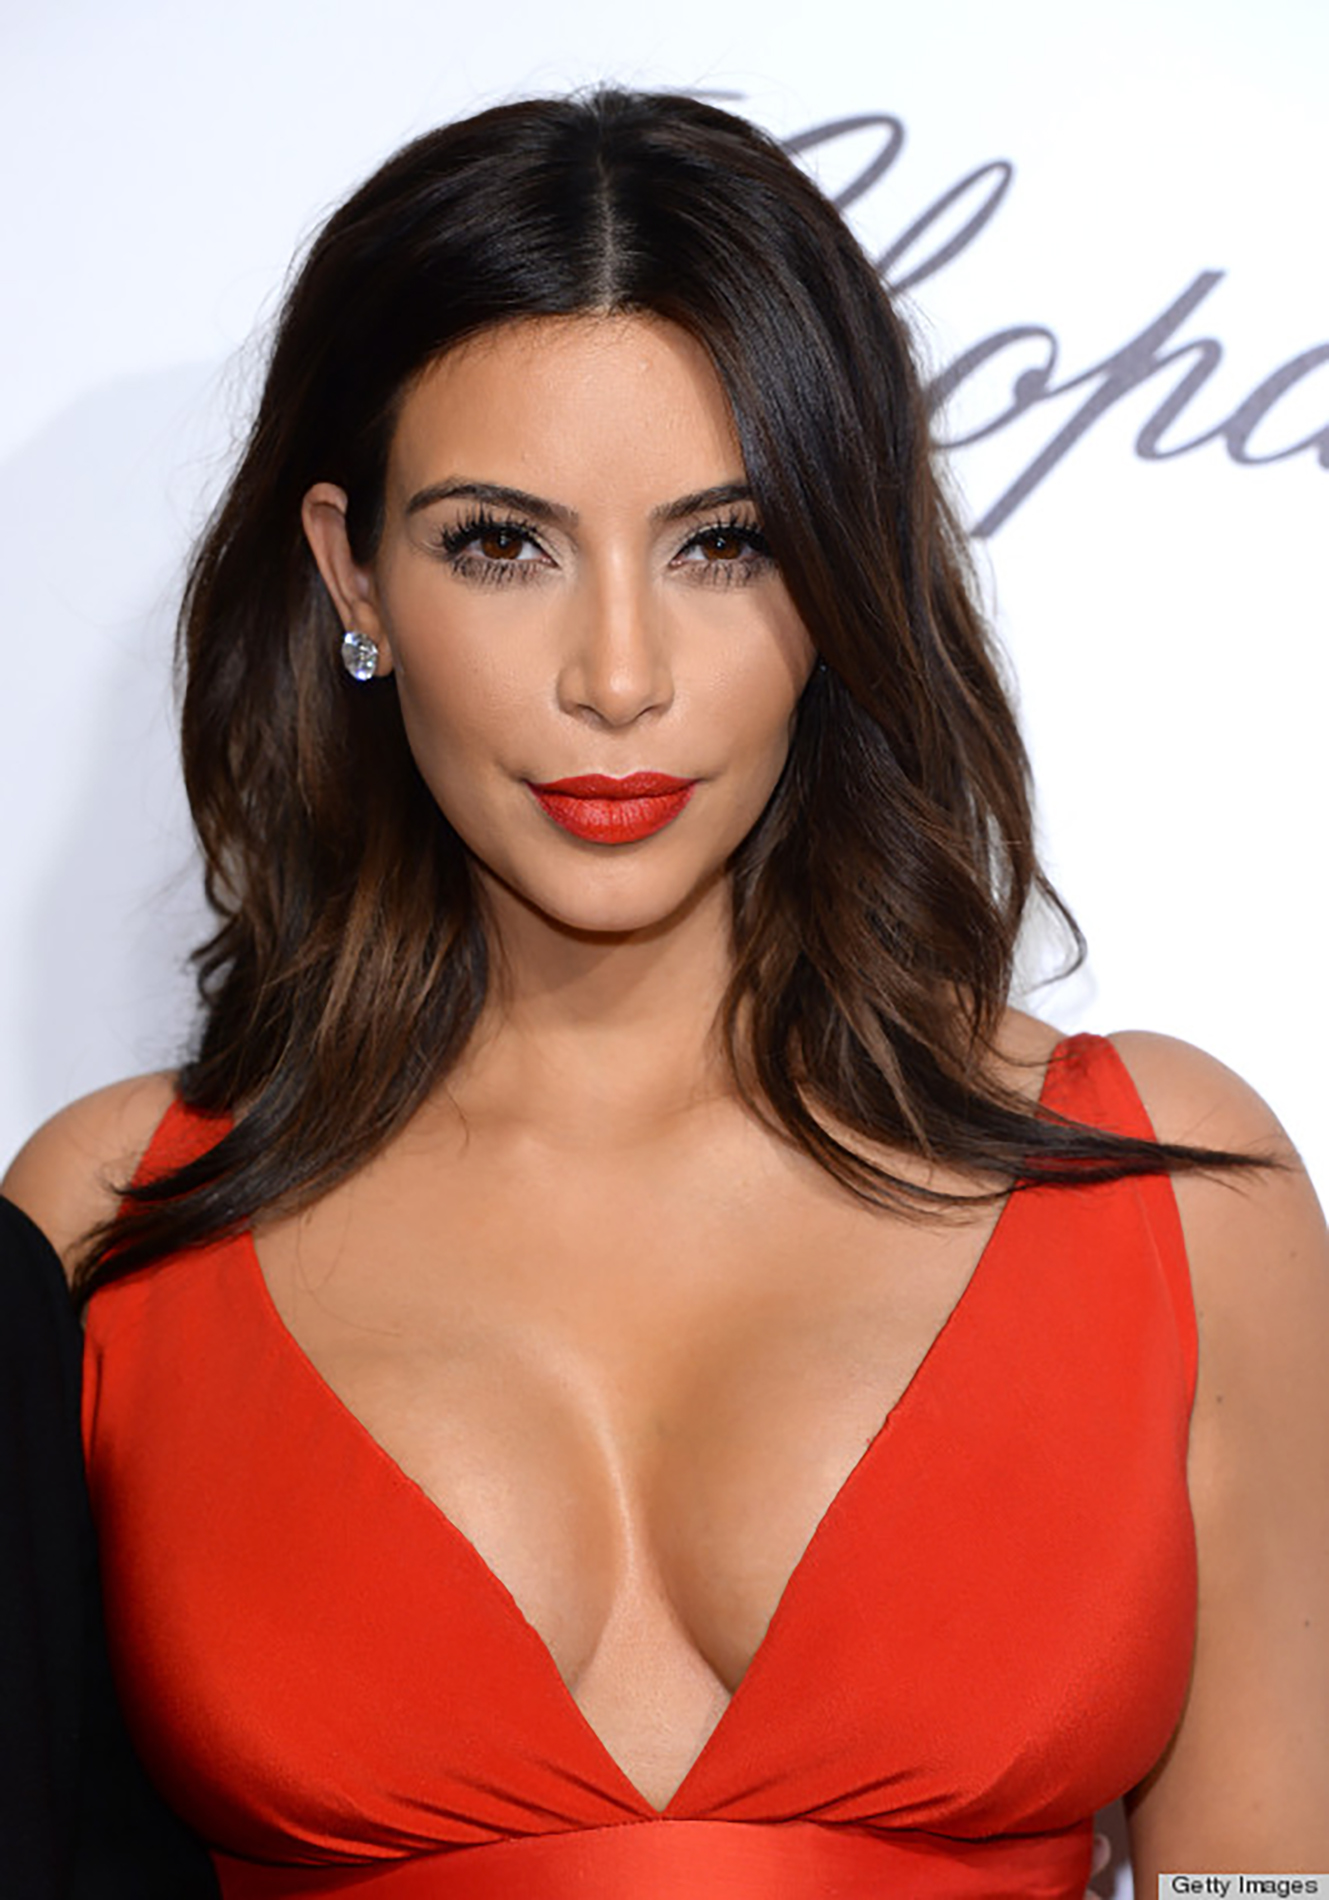 o KIM KARDASHIAN red lips